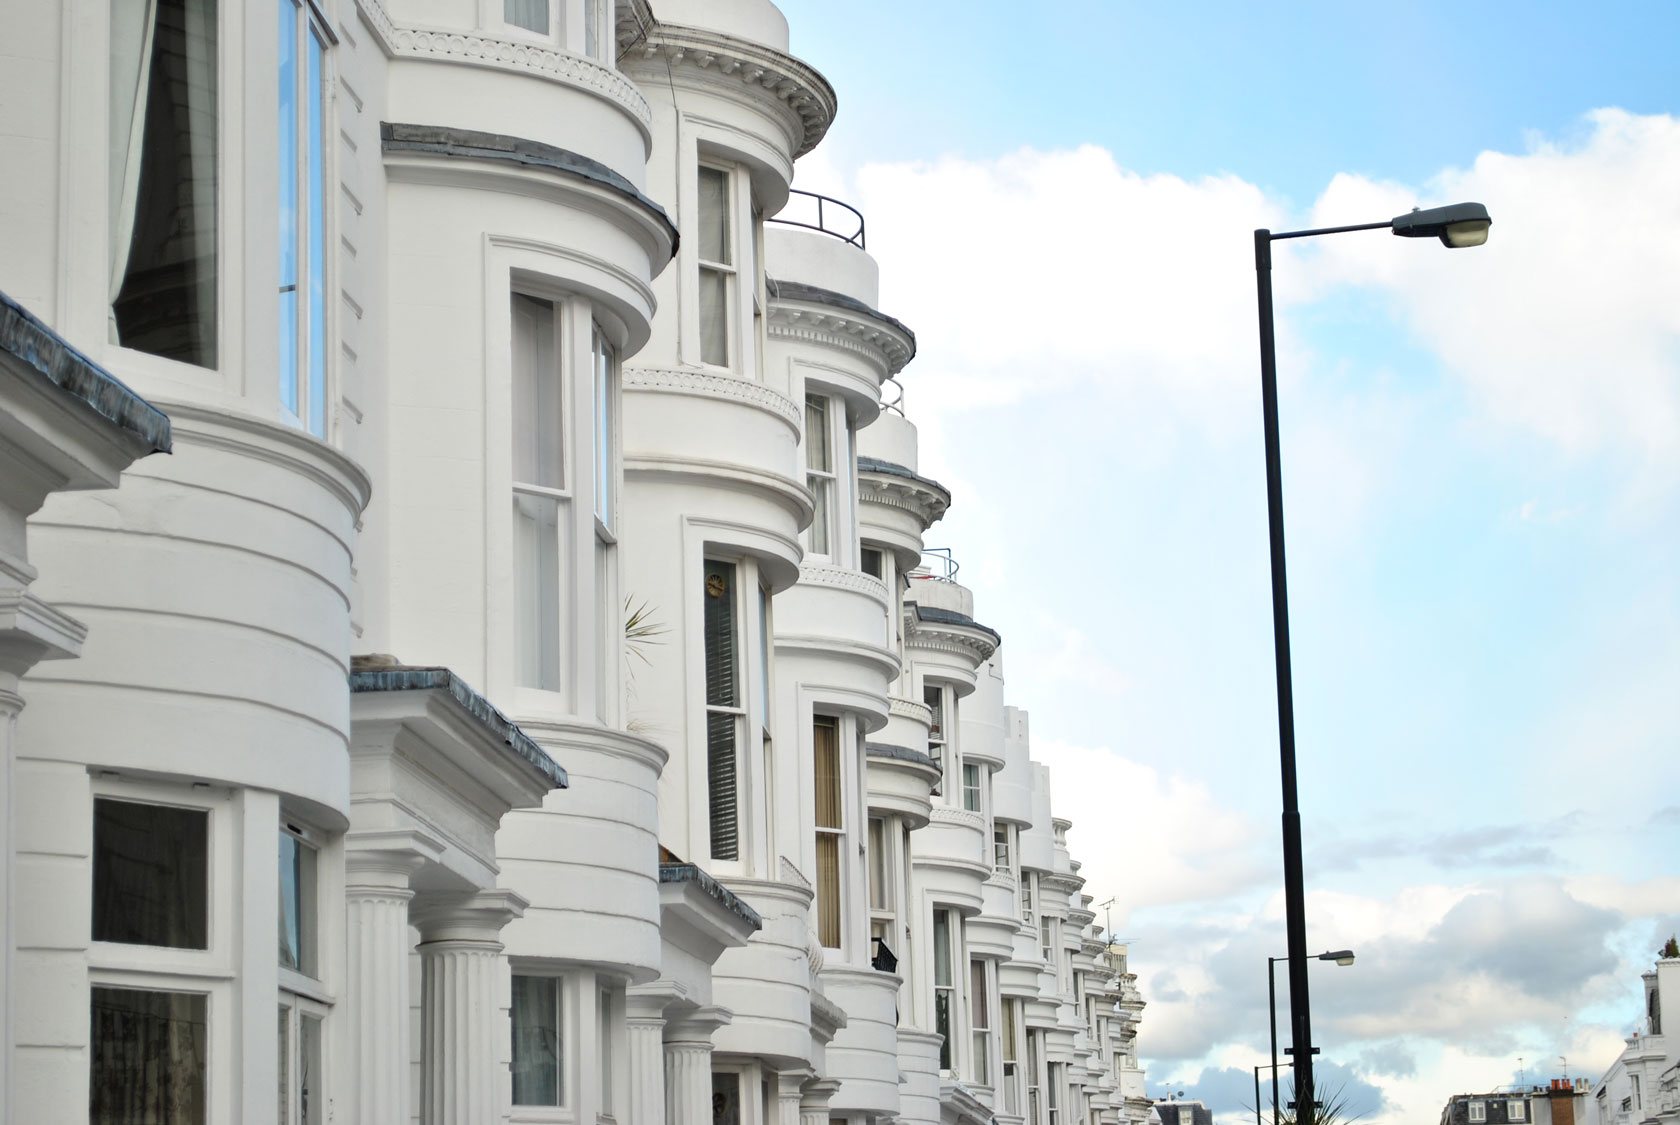 Victorian terraced houses on Gloucester Terrace